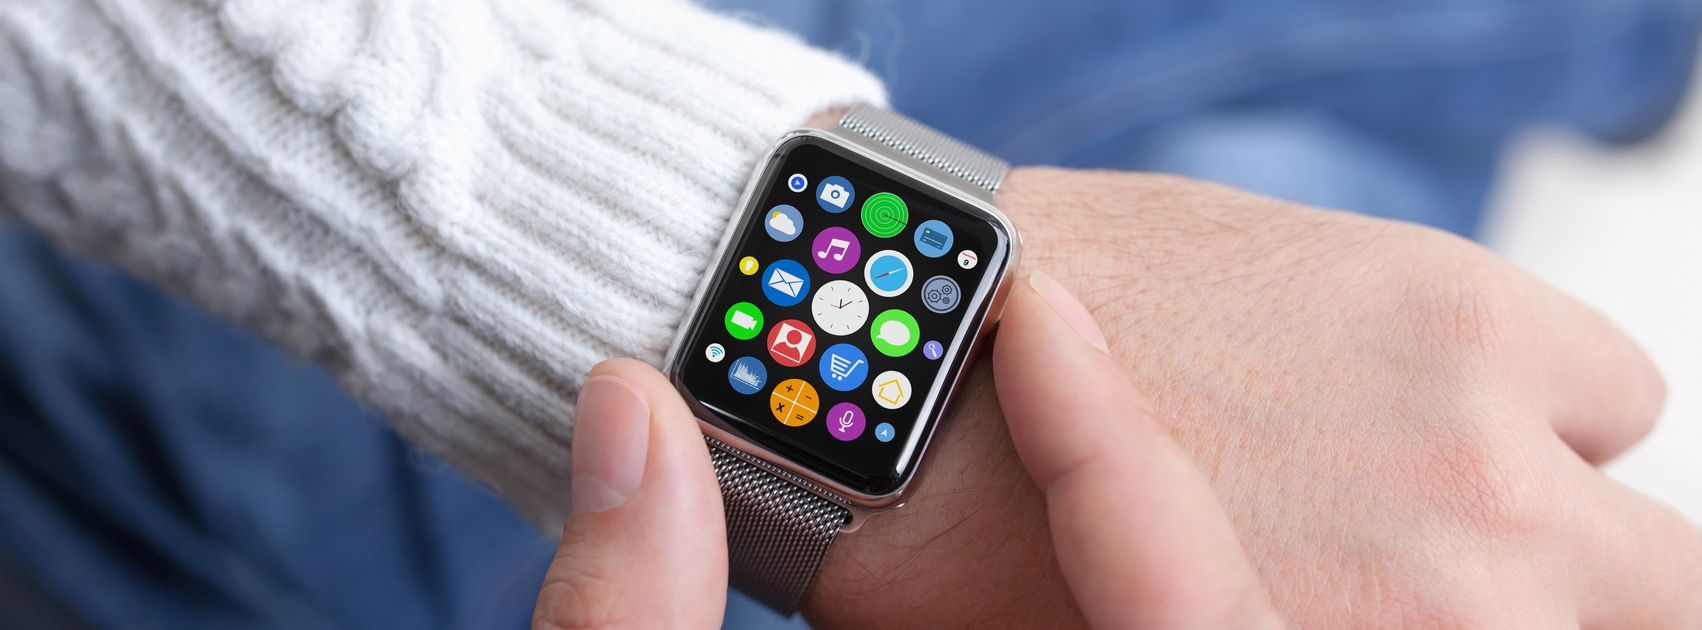 Man hand and Apple Watch with app on the screen. Apple Watch was created and developed by the Apple inc.